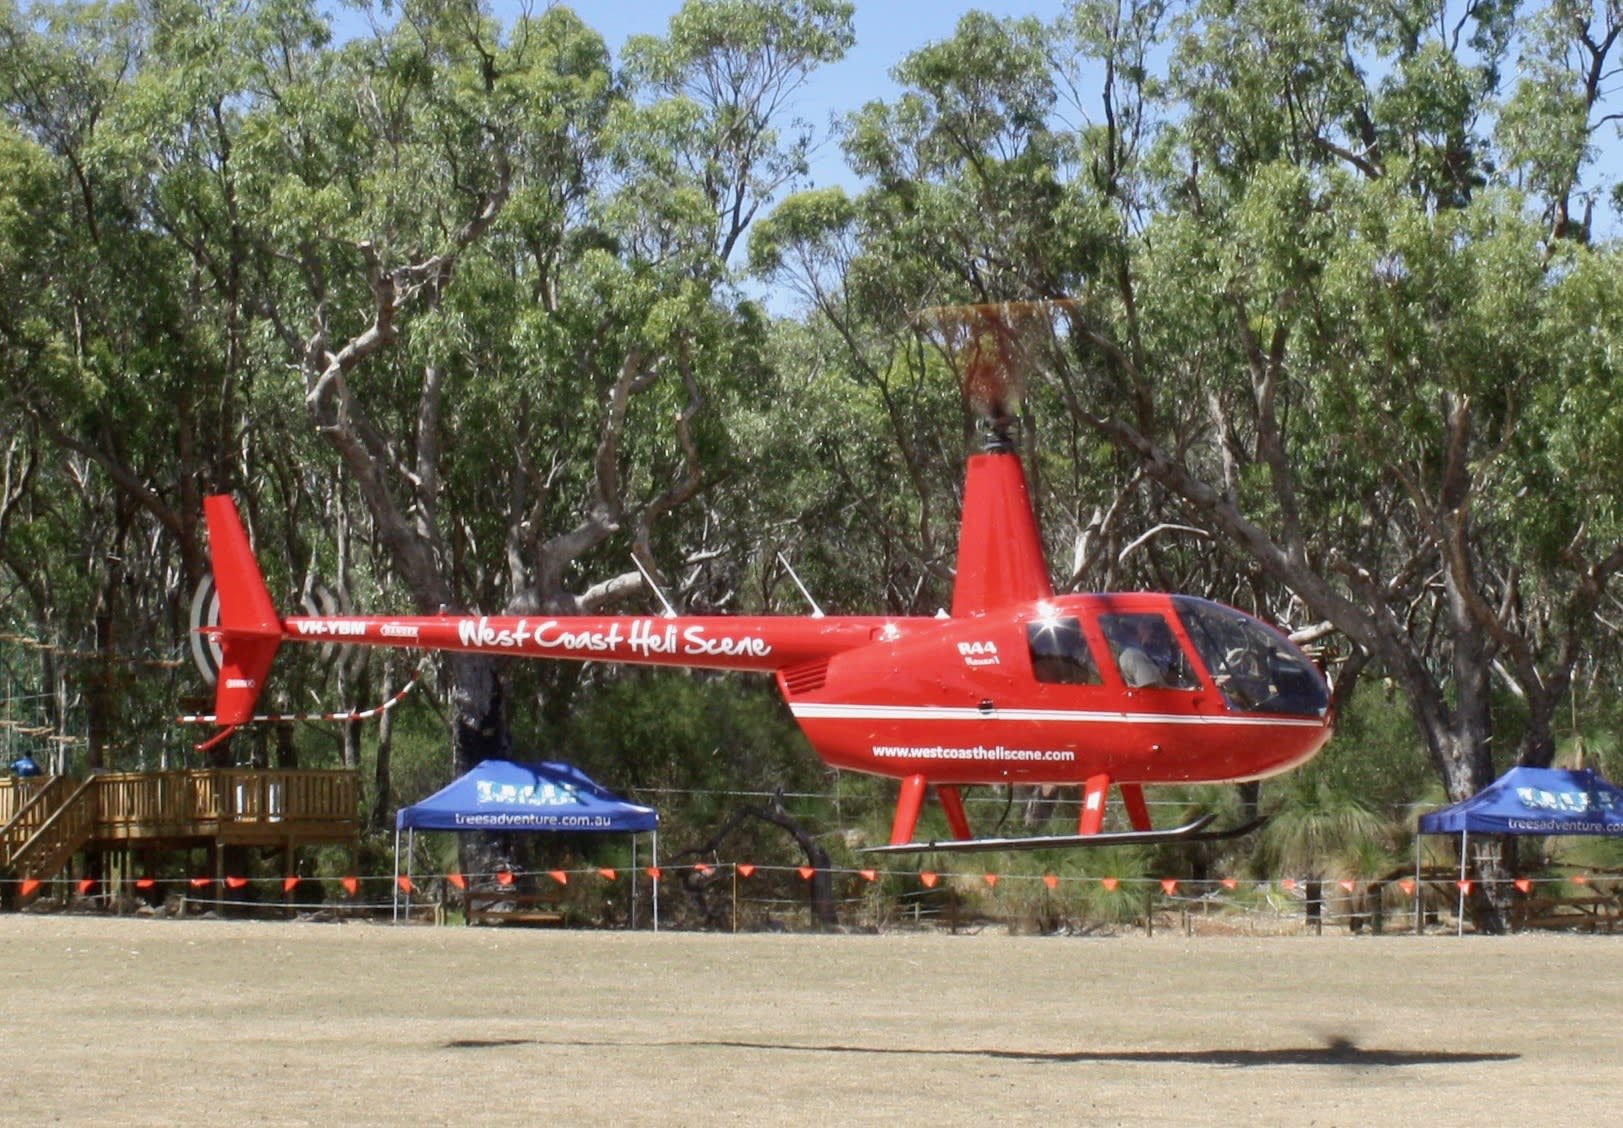 Helicopter Scenic Flight for 3 people, Moore River & Guilderton - 30 minute, Yanchep, Perth